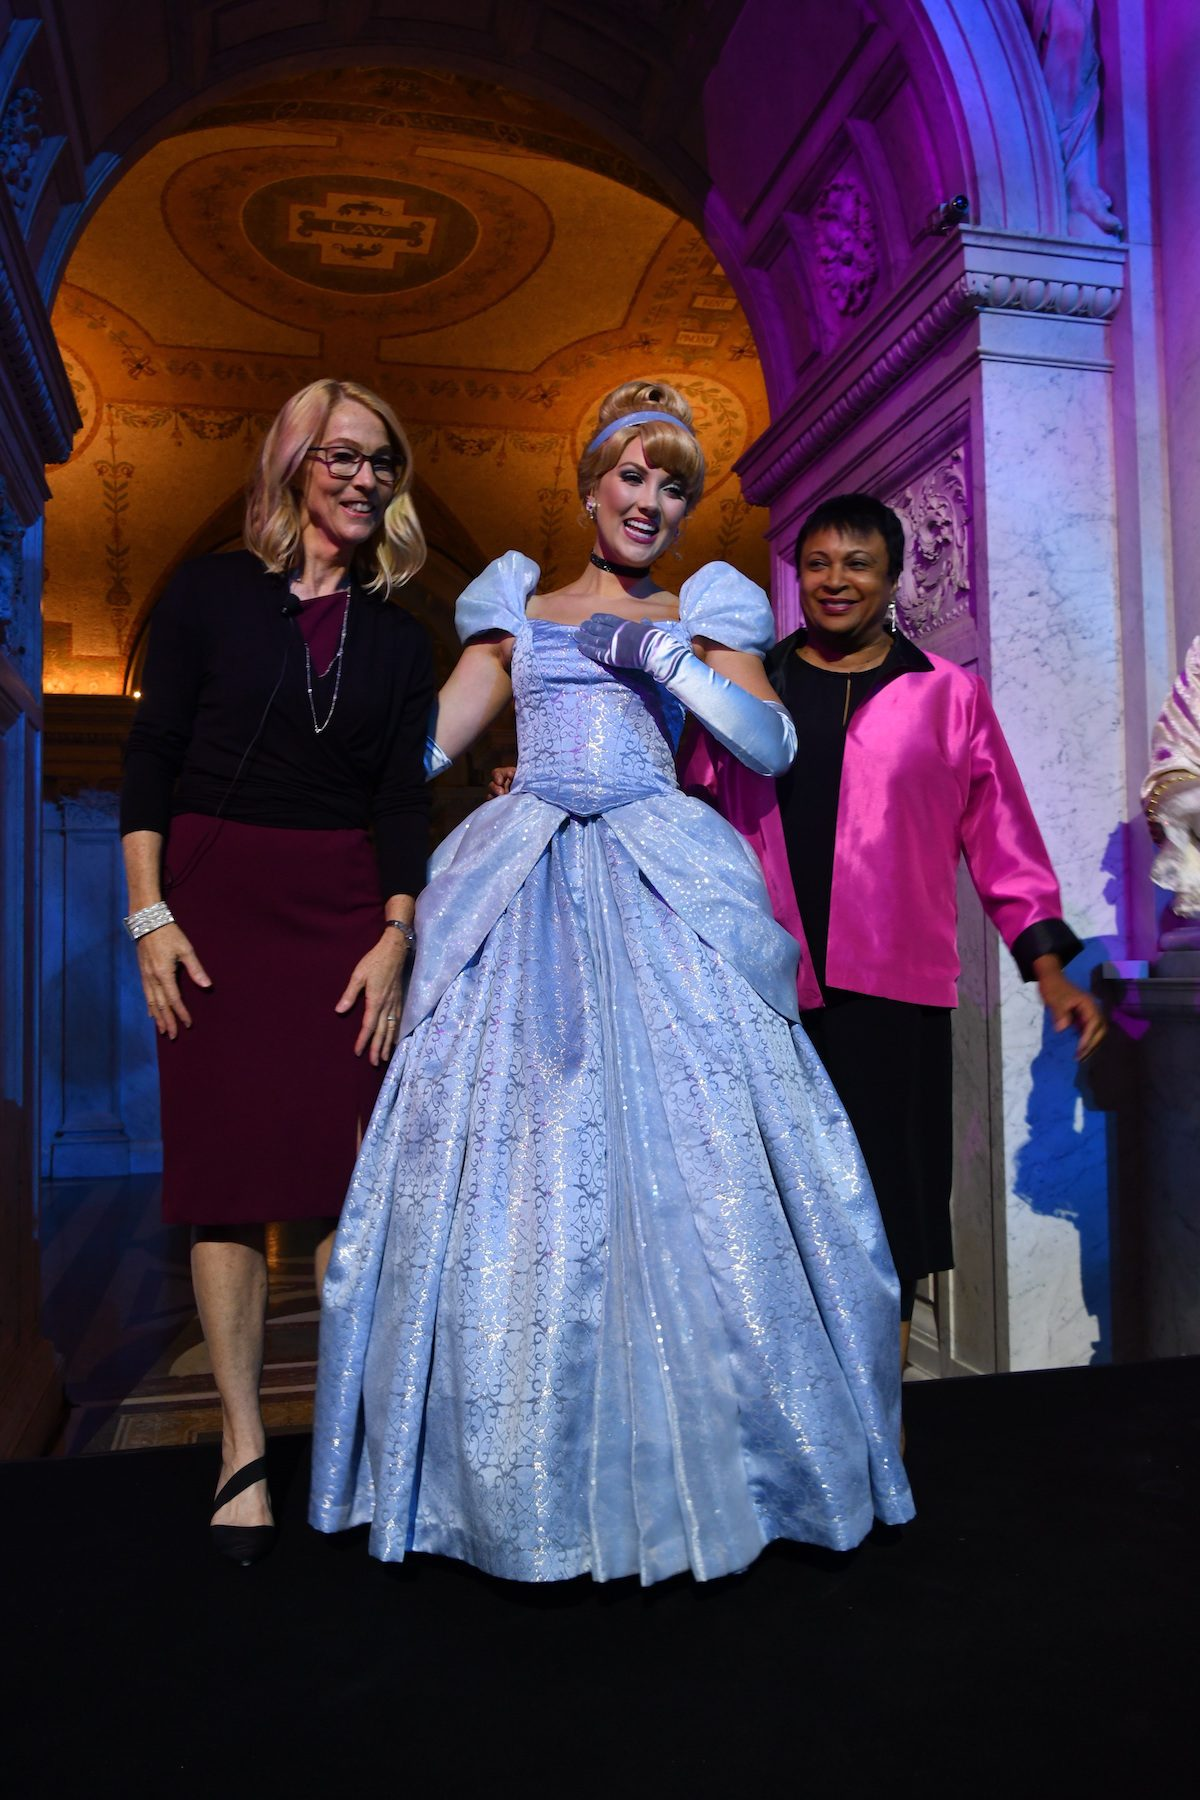 Costumed Cinderella poses with Mary Walsh